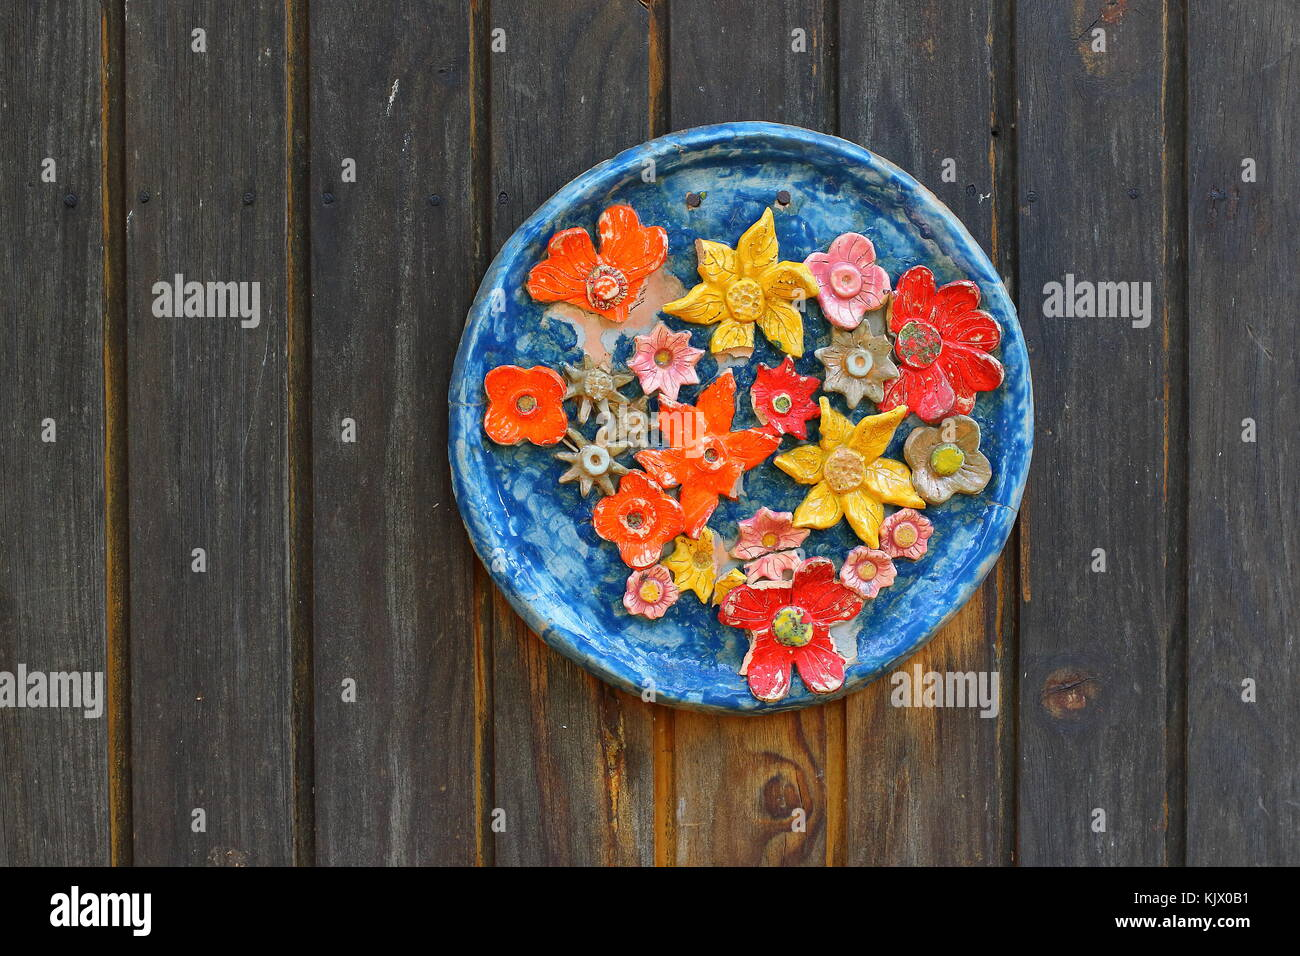 For background use - a faded and damaged ceramic plate with a colorful flower motif on a weathered wooden wall with - Stock Image